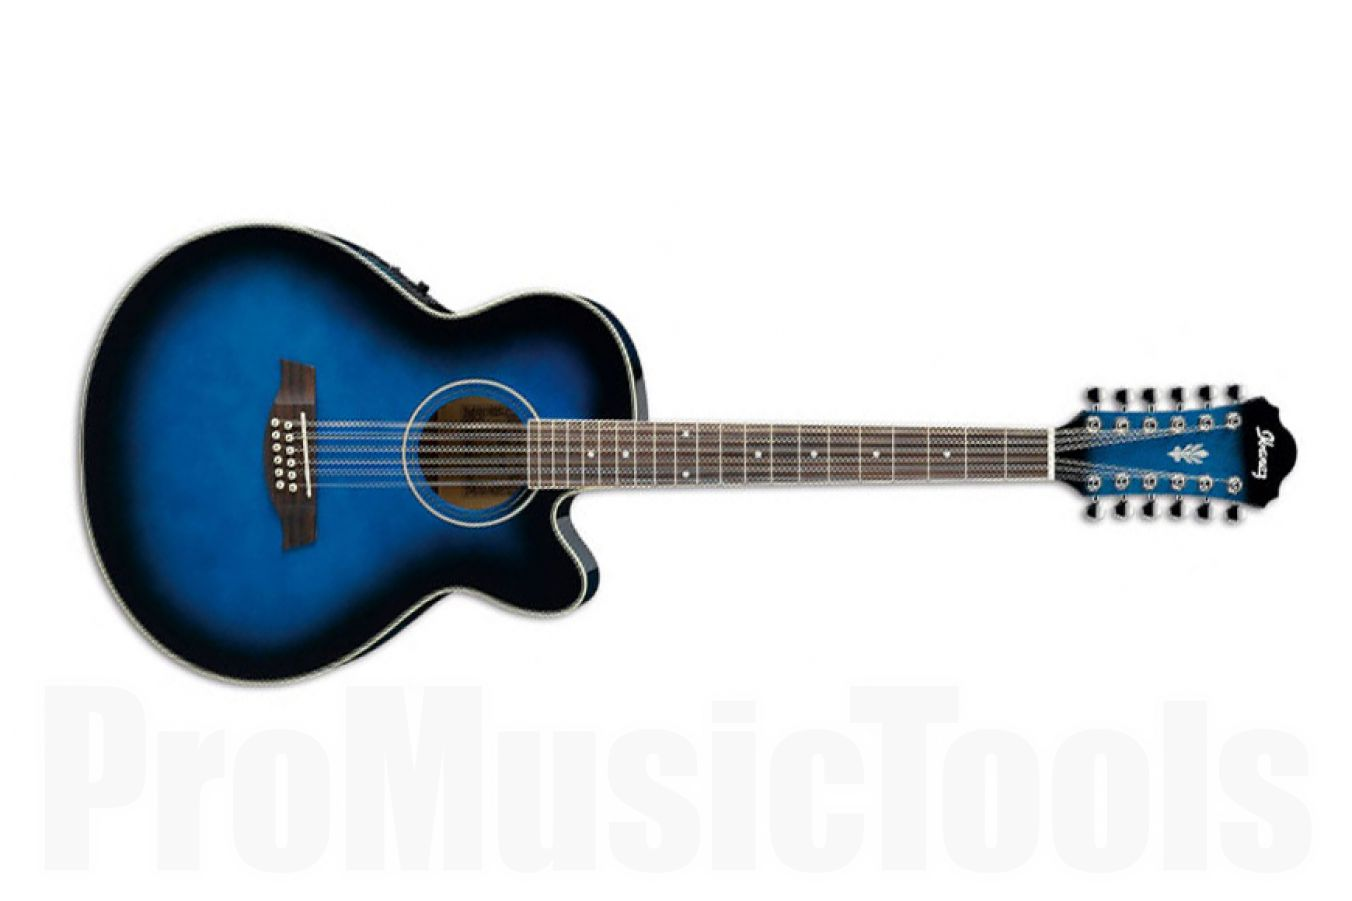 Ibanez AEL1512E TBS - Transparent Blue Sunburst